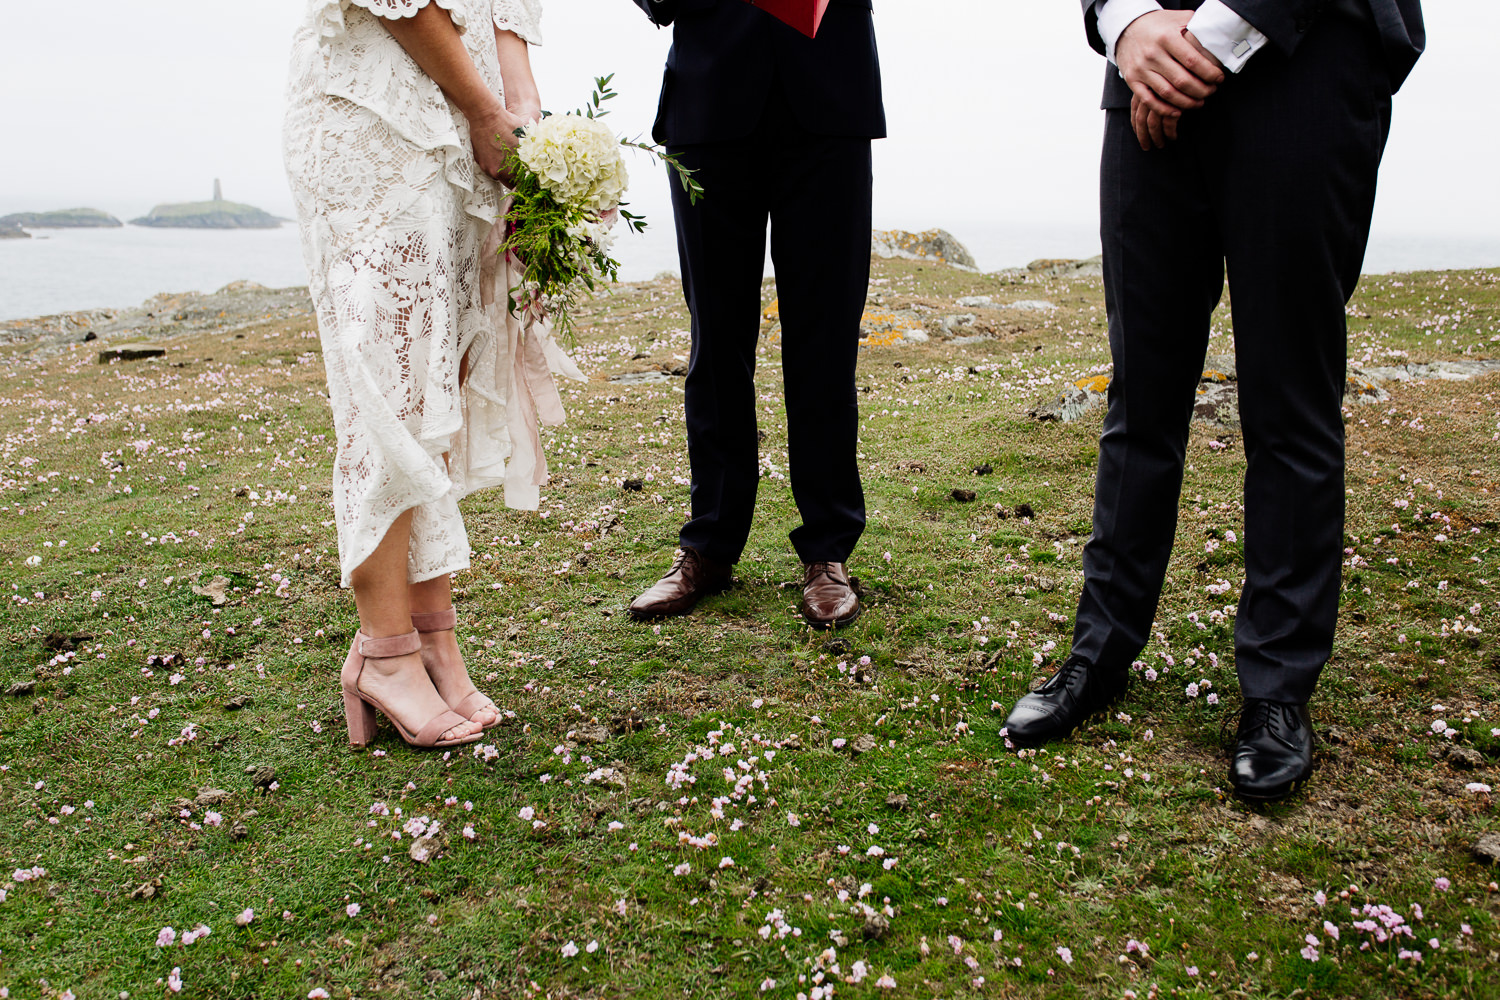 Detail of a bride and groom's feet at their outdoor tipi wedding ceremony in Anglesey, Wales.